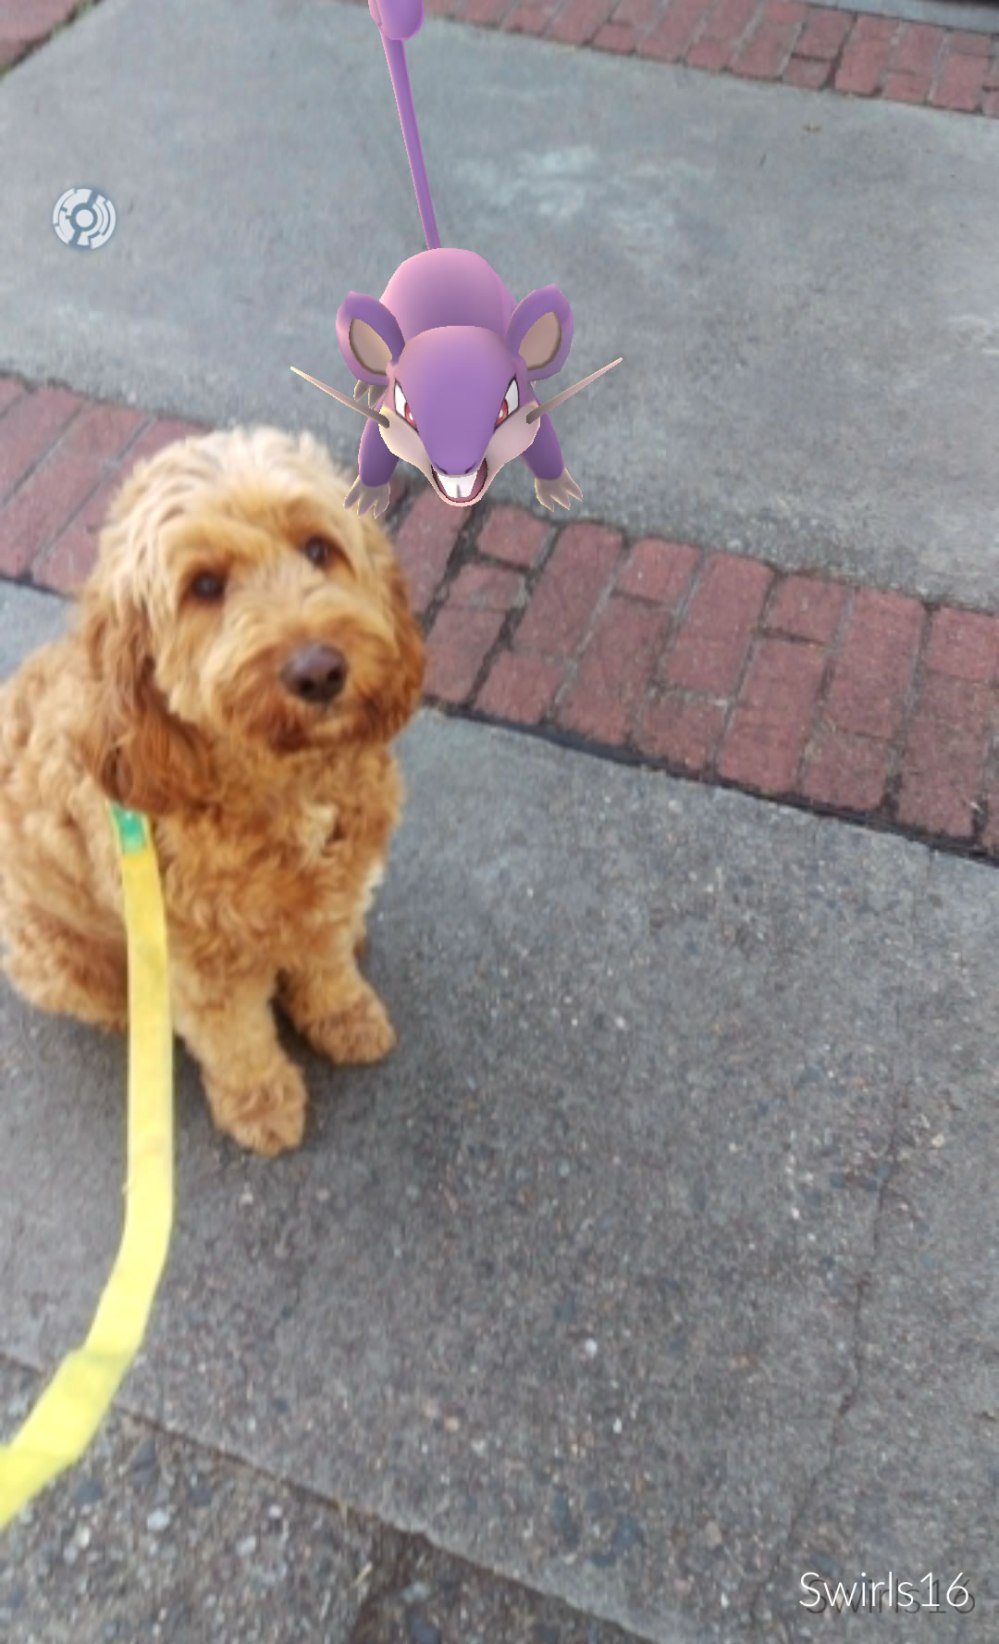 image of George the Therapy dog with a PokemonGo Rattata